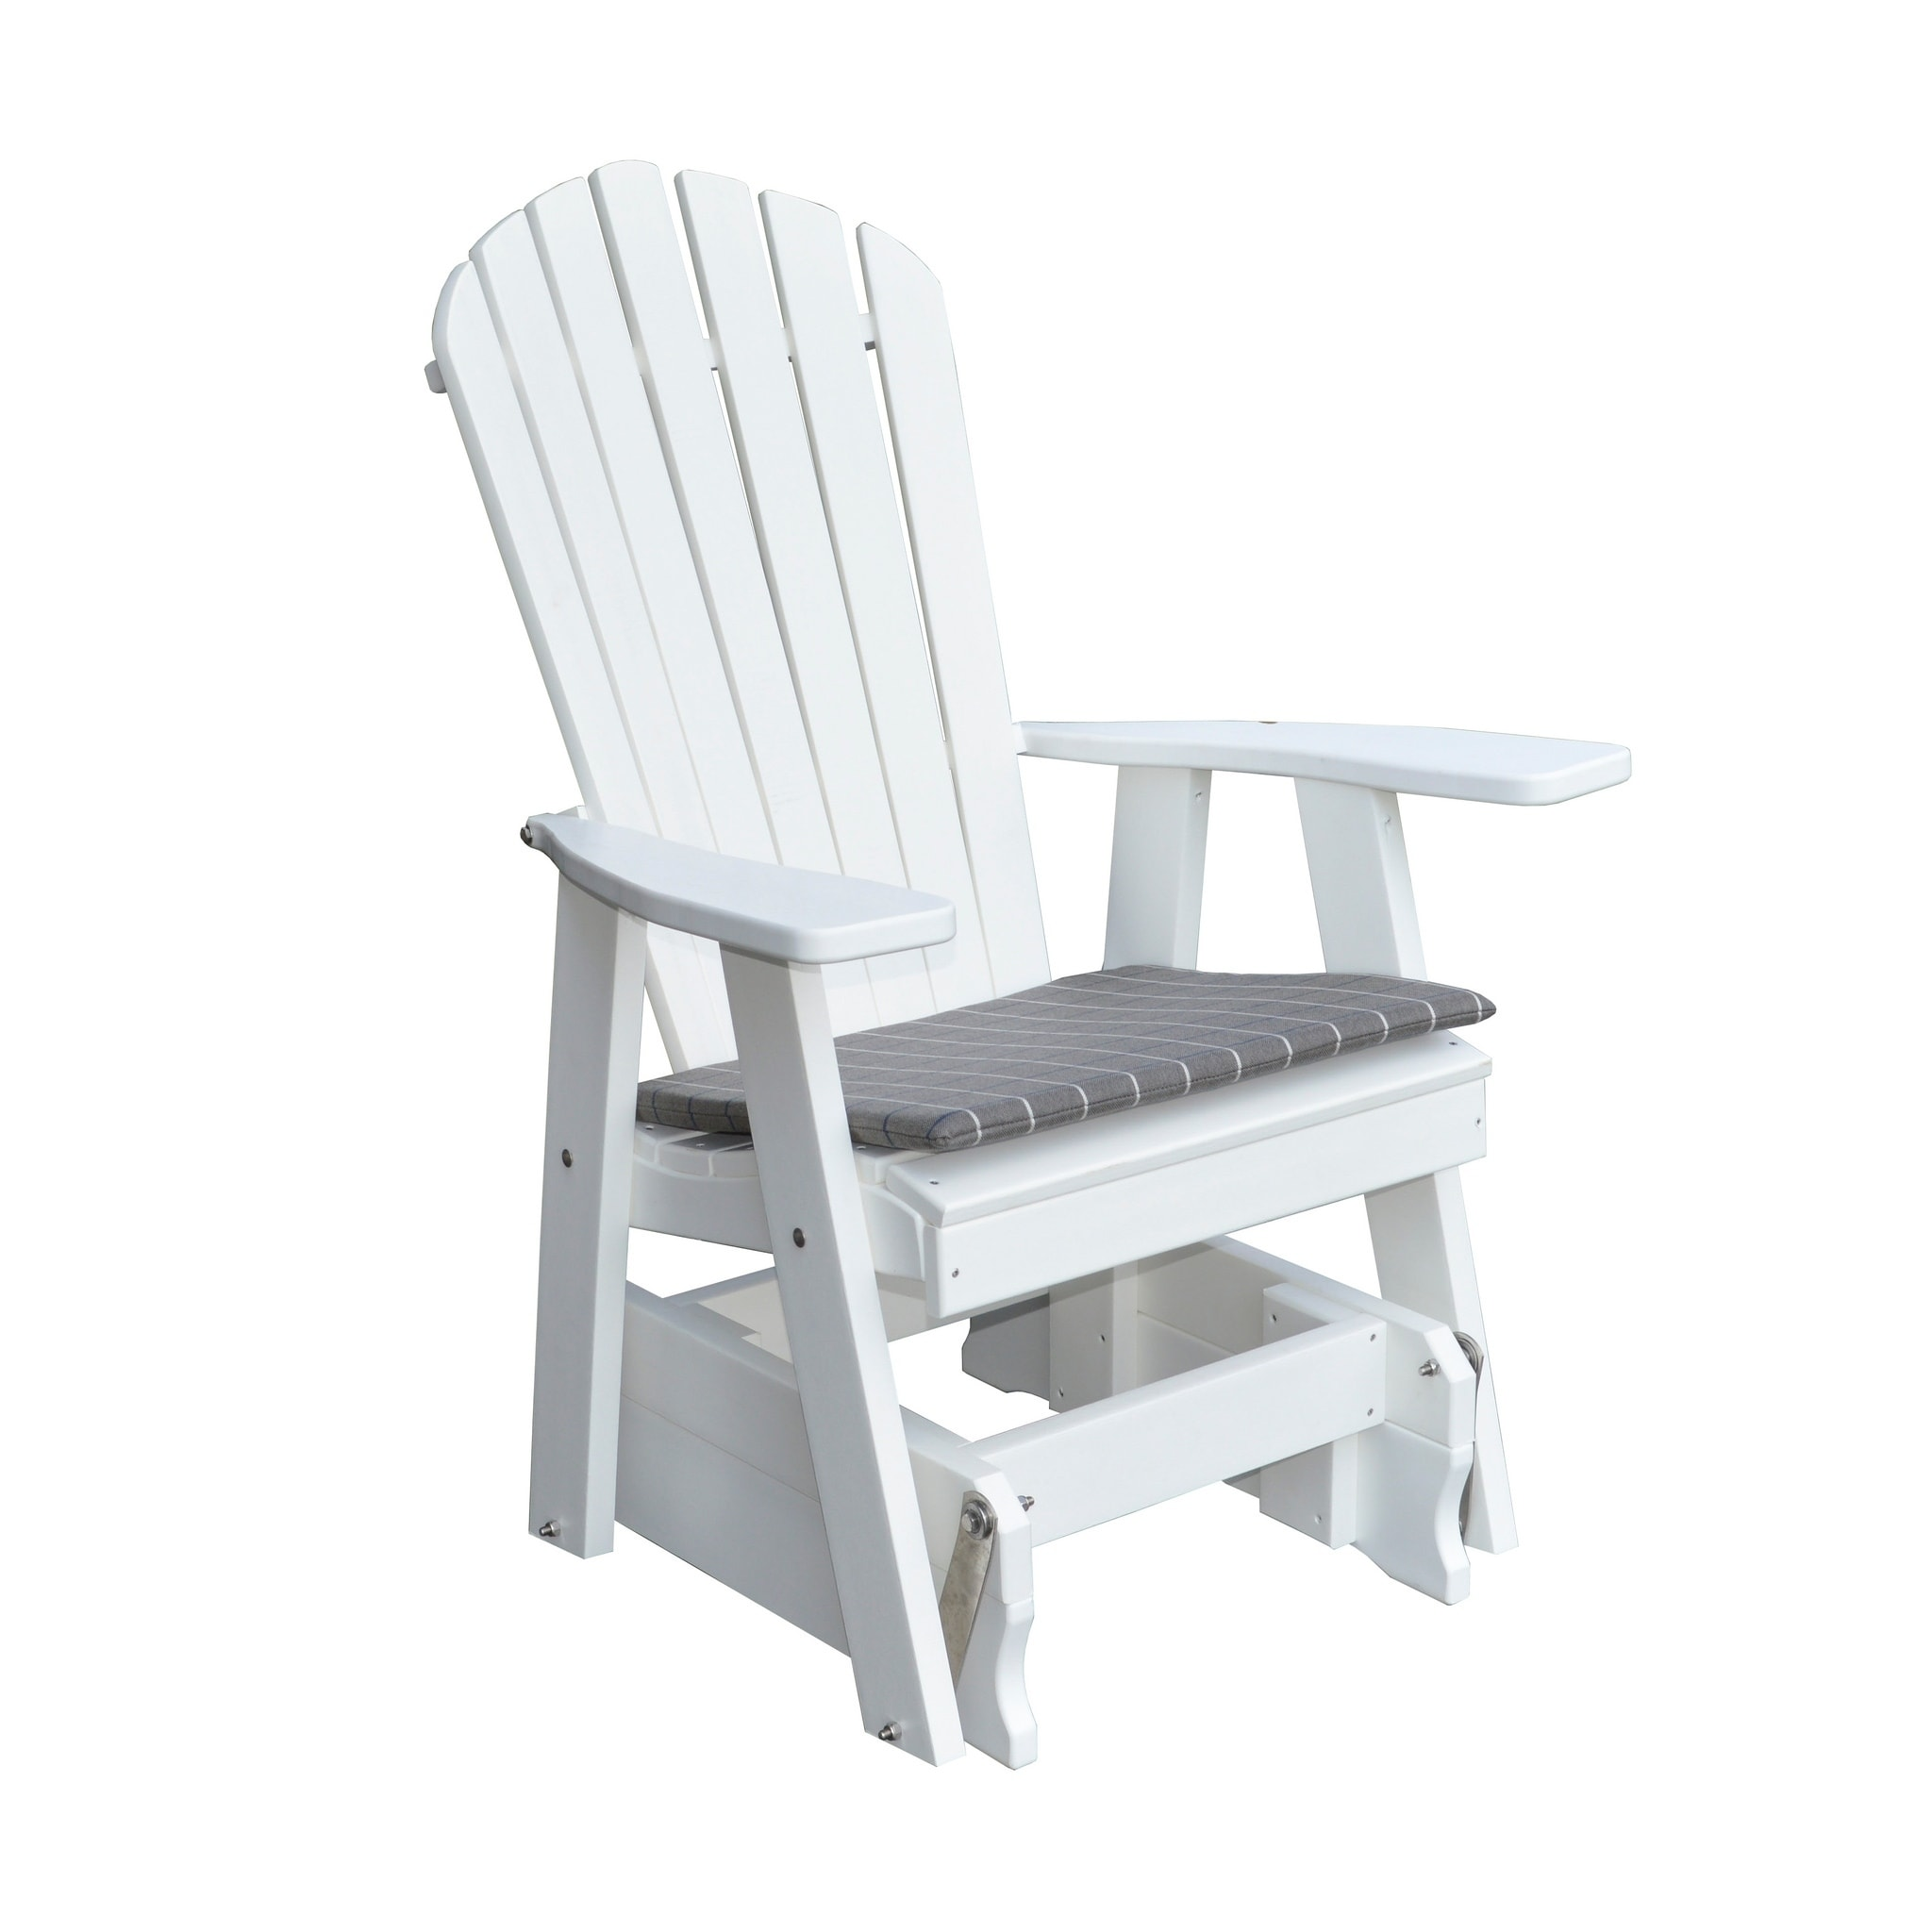 Gliding Chair Outdoor Adirondack Style Gliding Chair Recycled Plastic